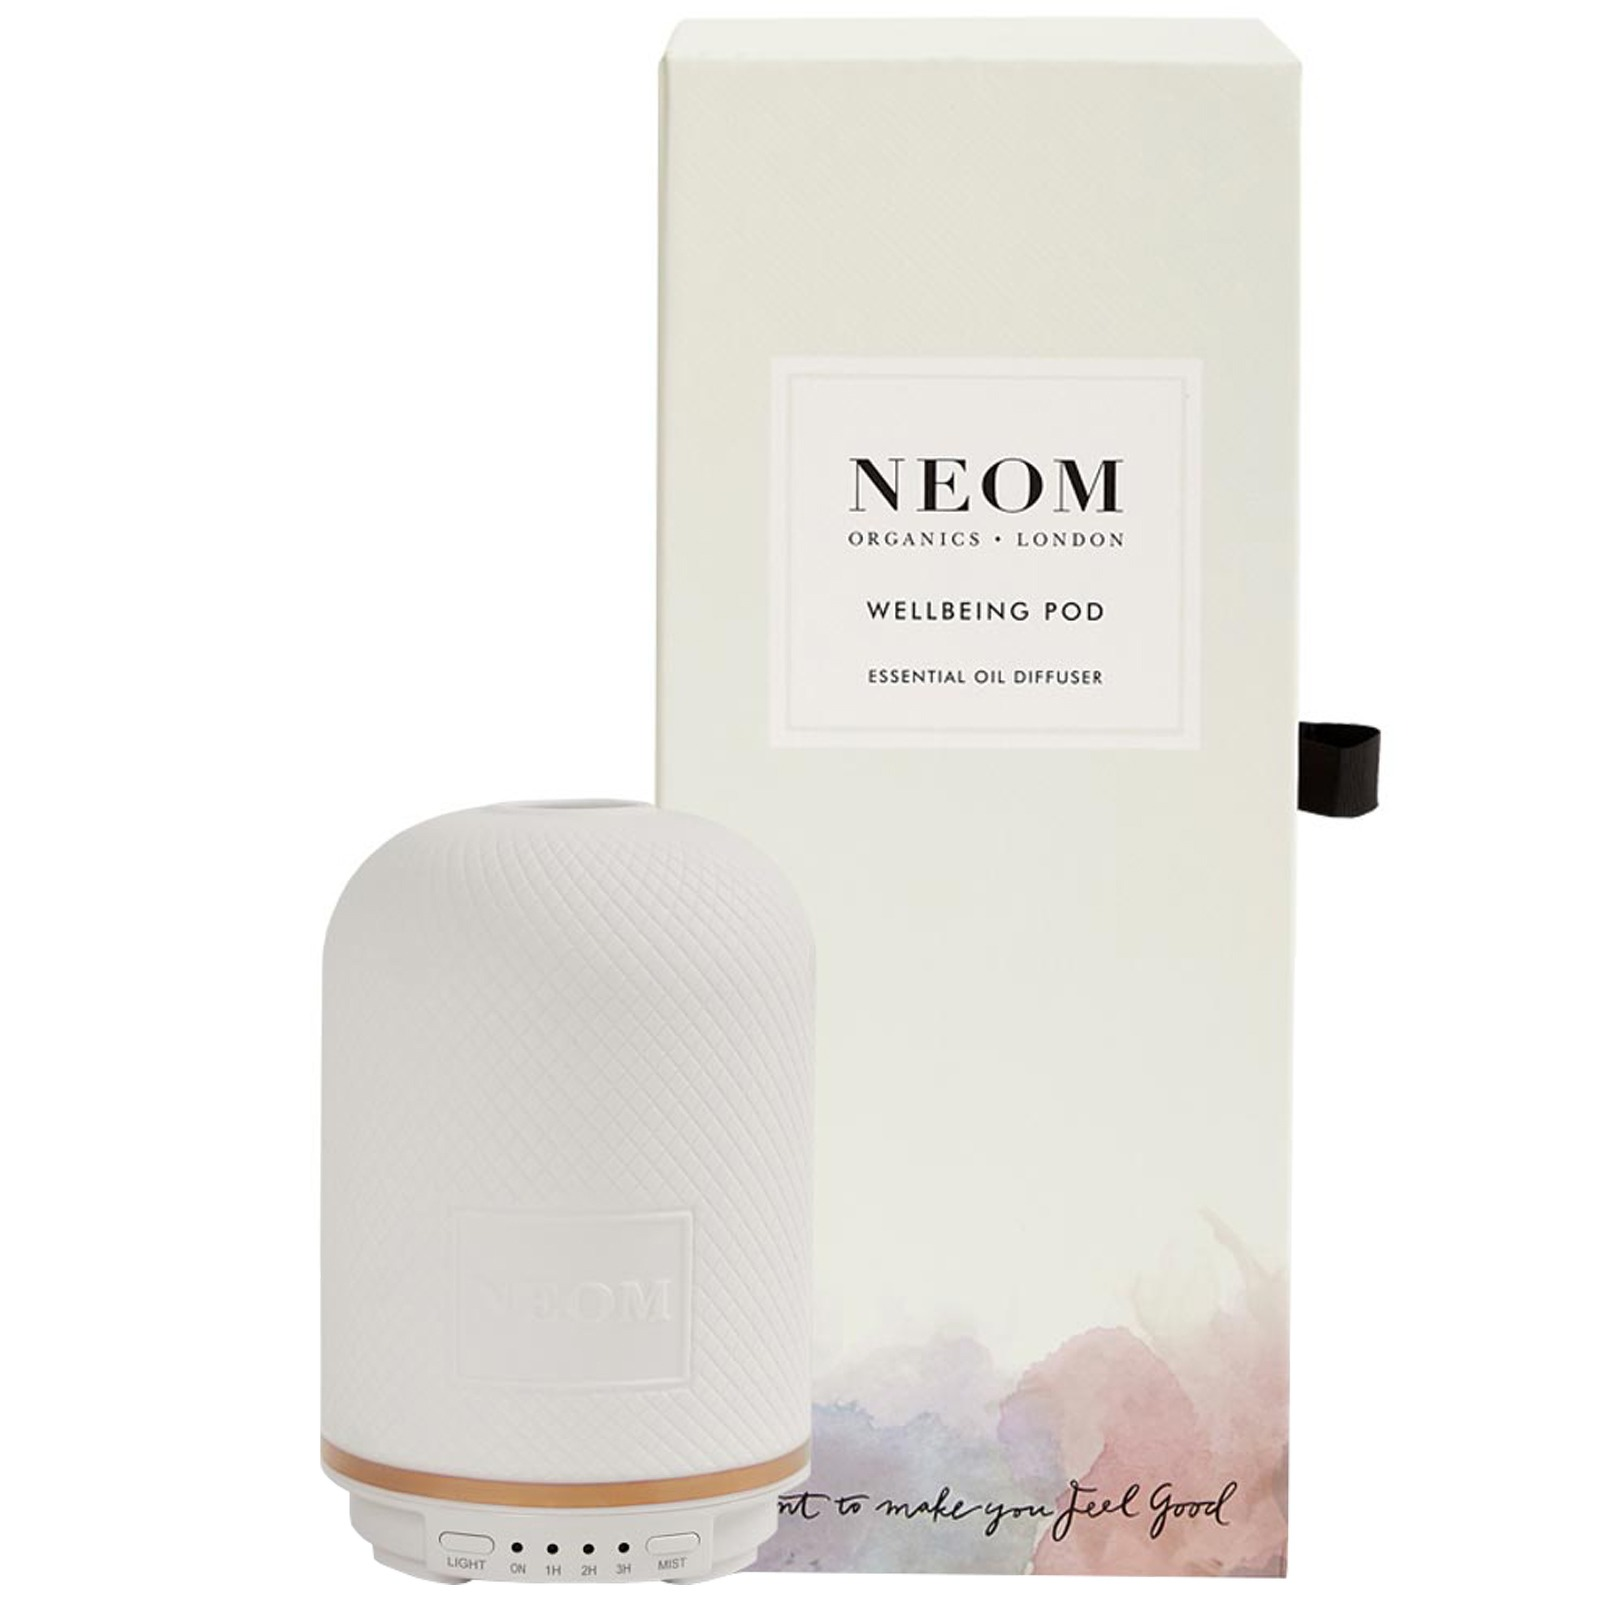 Neom Organics London Gifting & Accessories Wellbeing Pod Essential Oil Diffuser